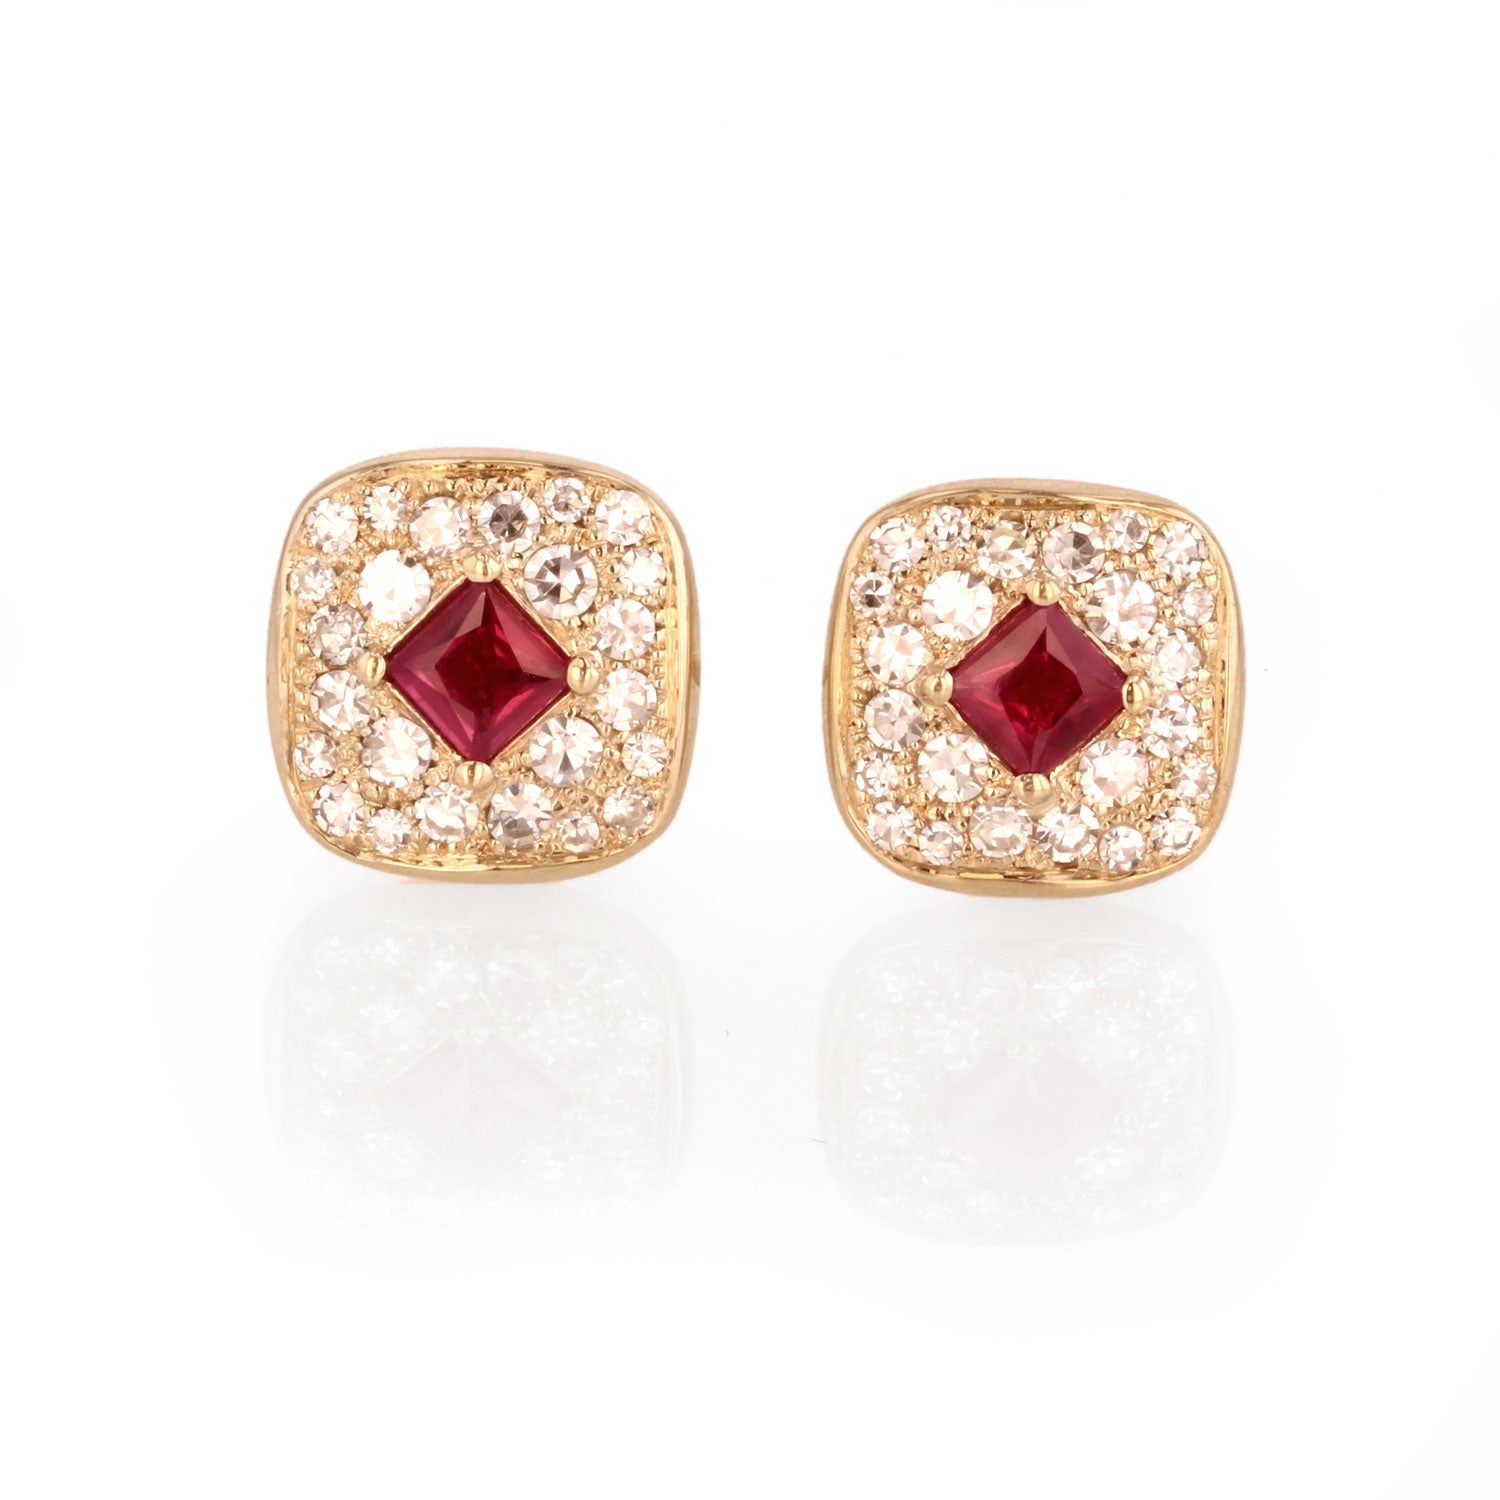 Ruby and Diamond earrings